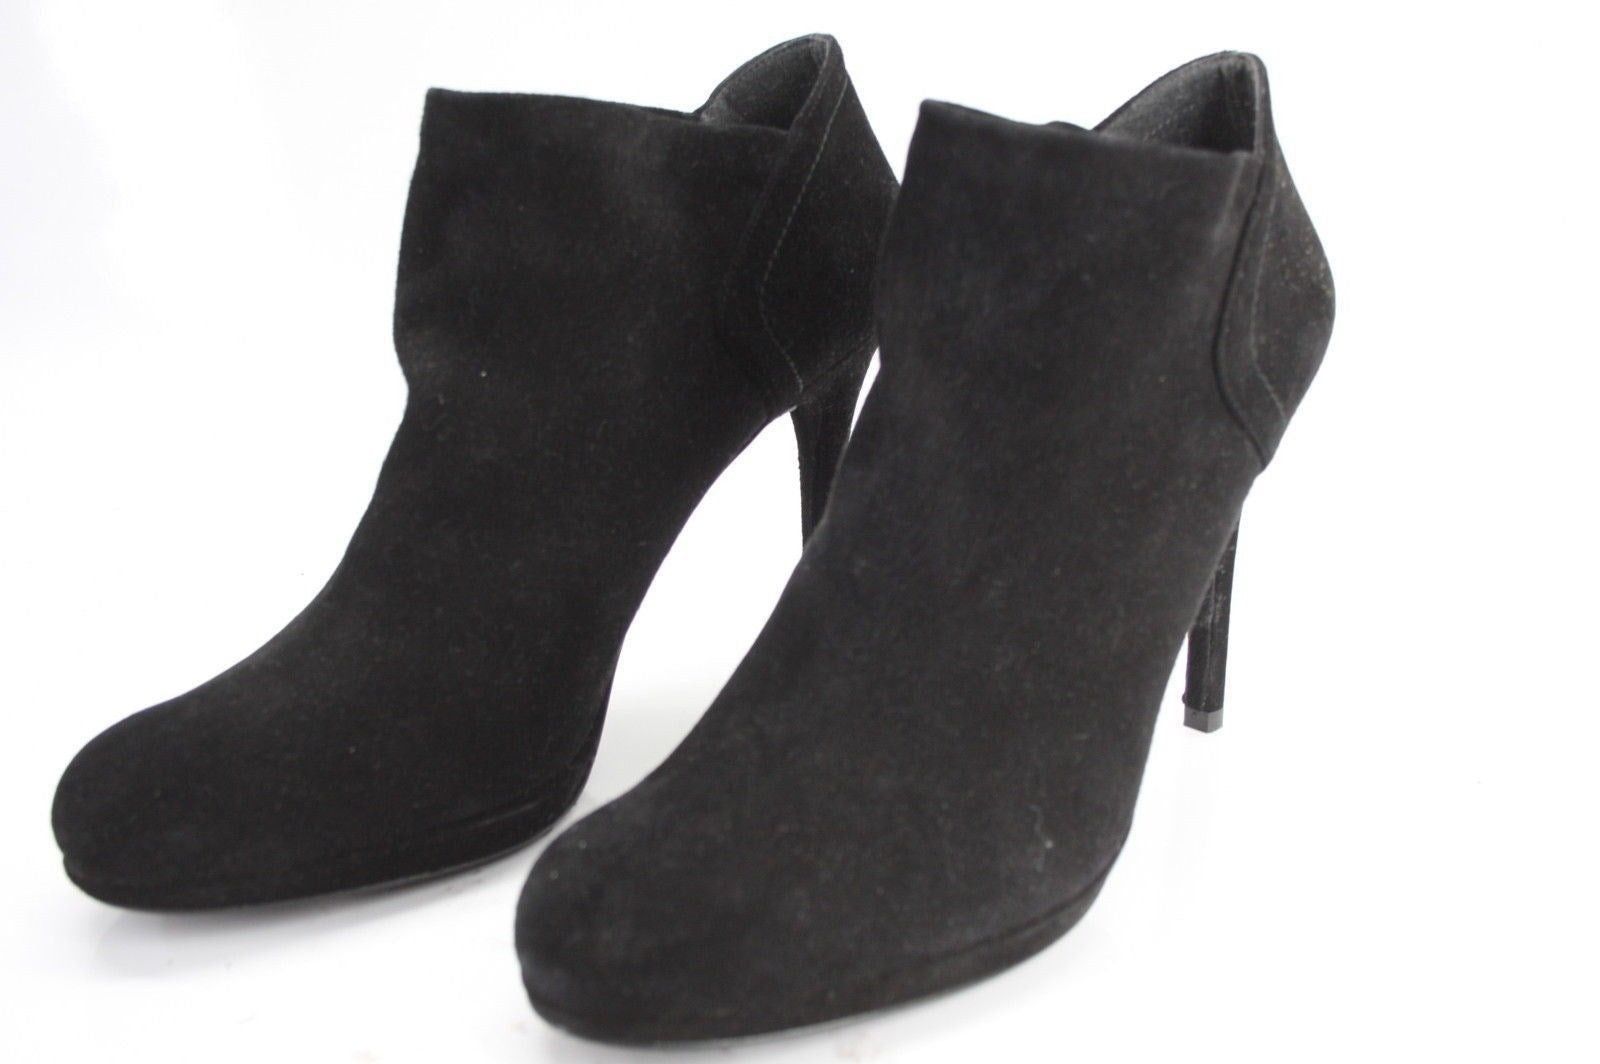 Stuart Weitzman Black Suede Bluster High Heel Ankle Boots Size 10 NEW $395